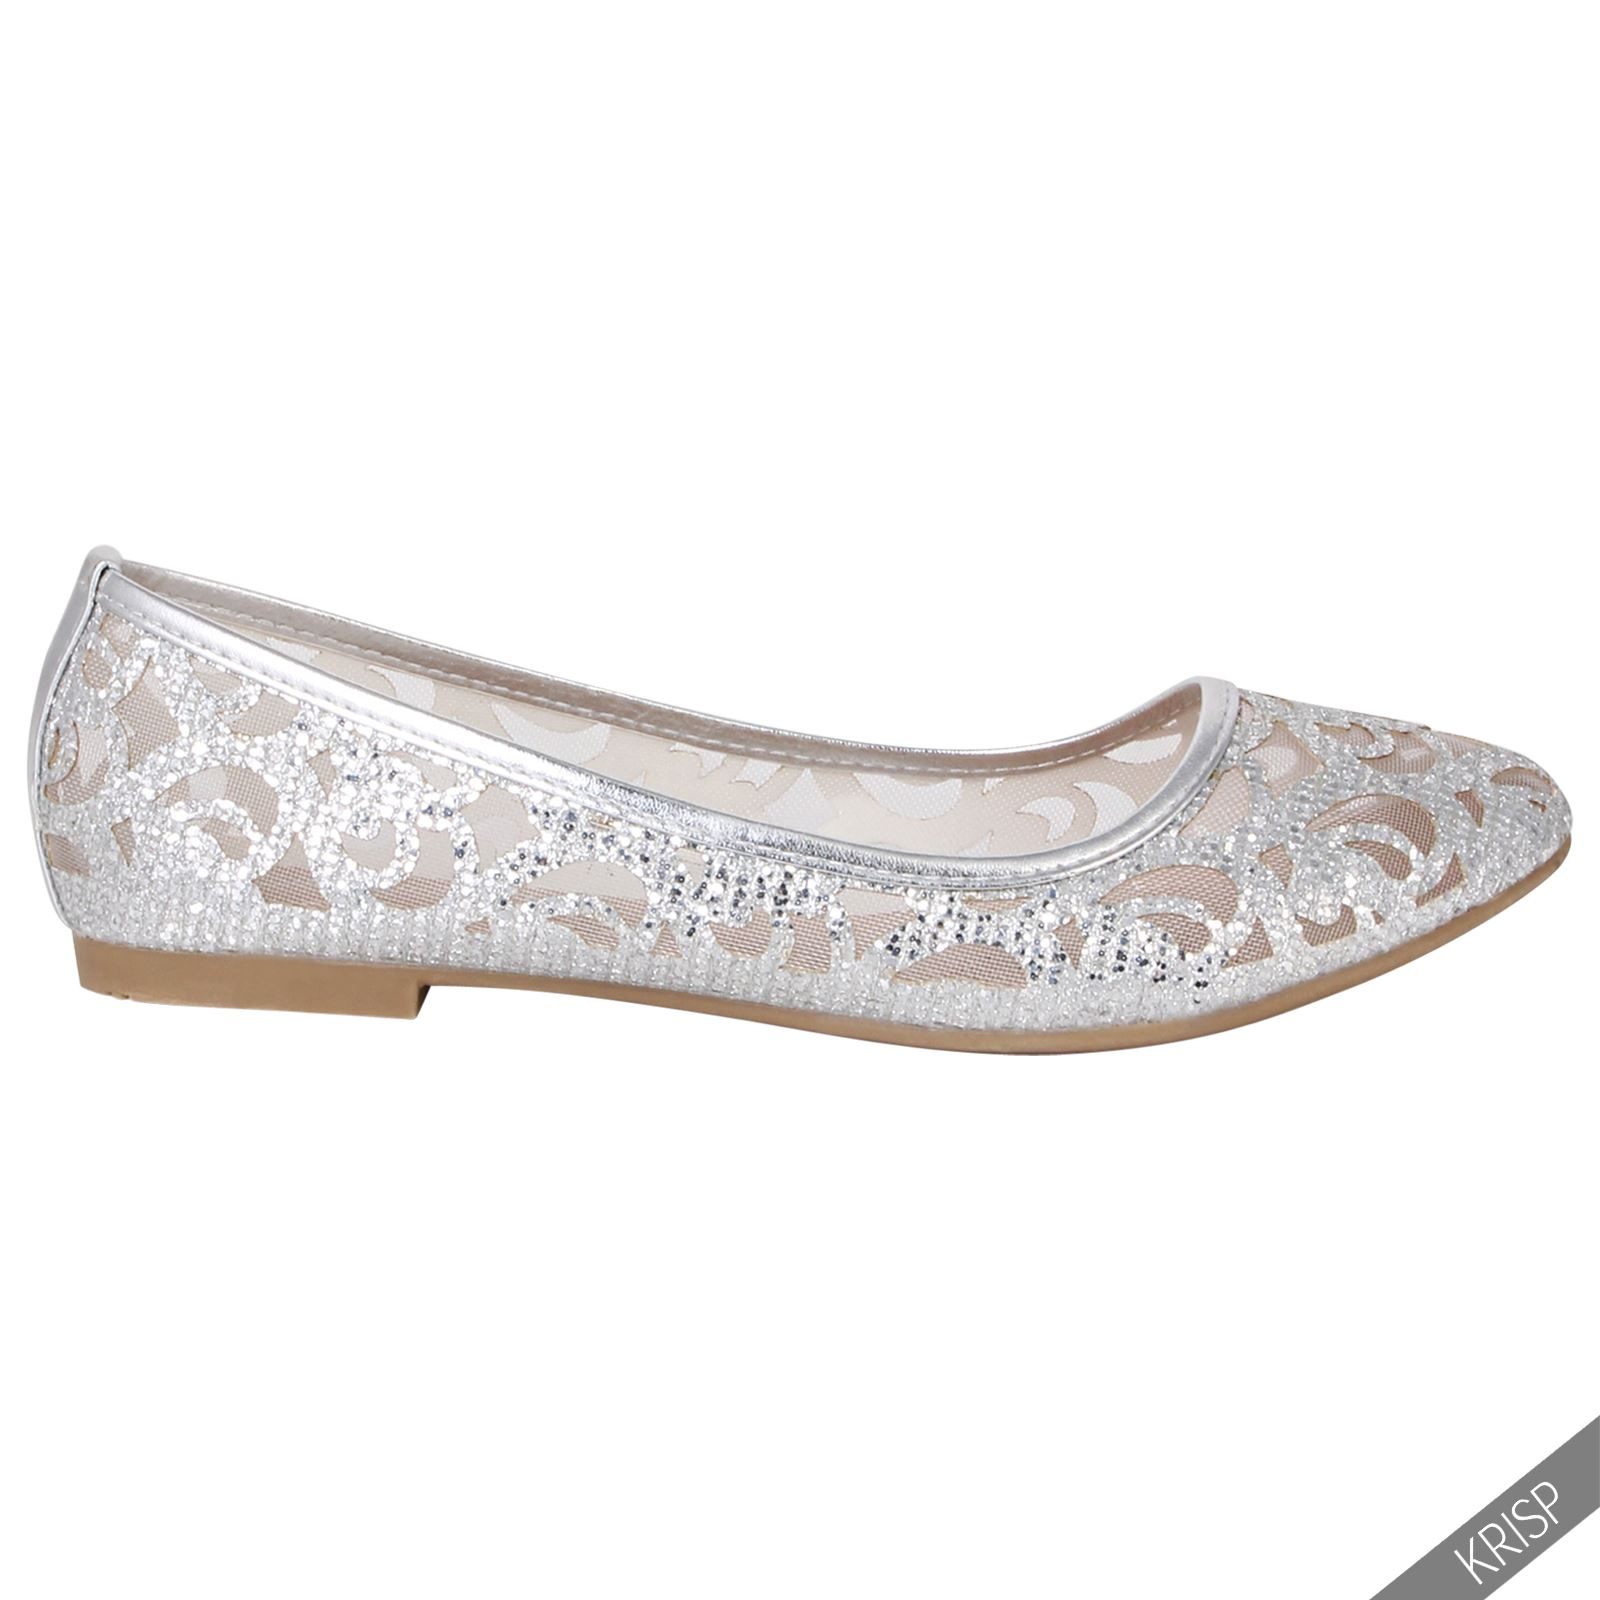 Gold LADIES BALLERINA SIZE NEW FLAT ESSEX GLAM GLITTER WOMENS PUMPS BALLET SHOES BRIDAL DOLLY Glitter Get in touch with our 24/7 support team via phone, email or customer portal. About Us. The UK's third largest provider of business software and services, we .